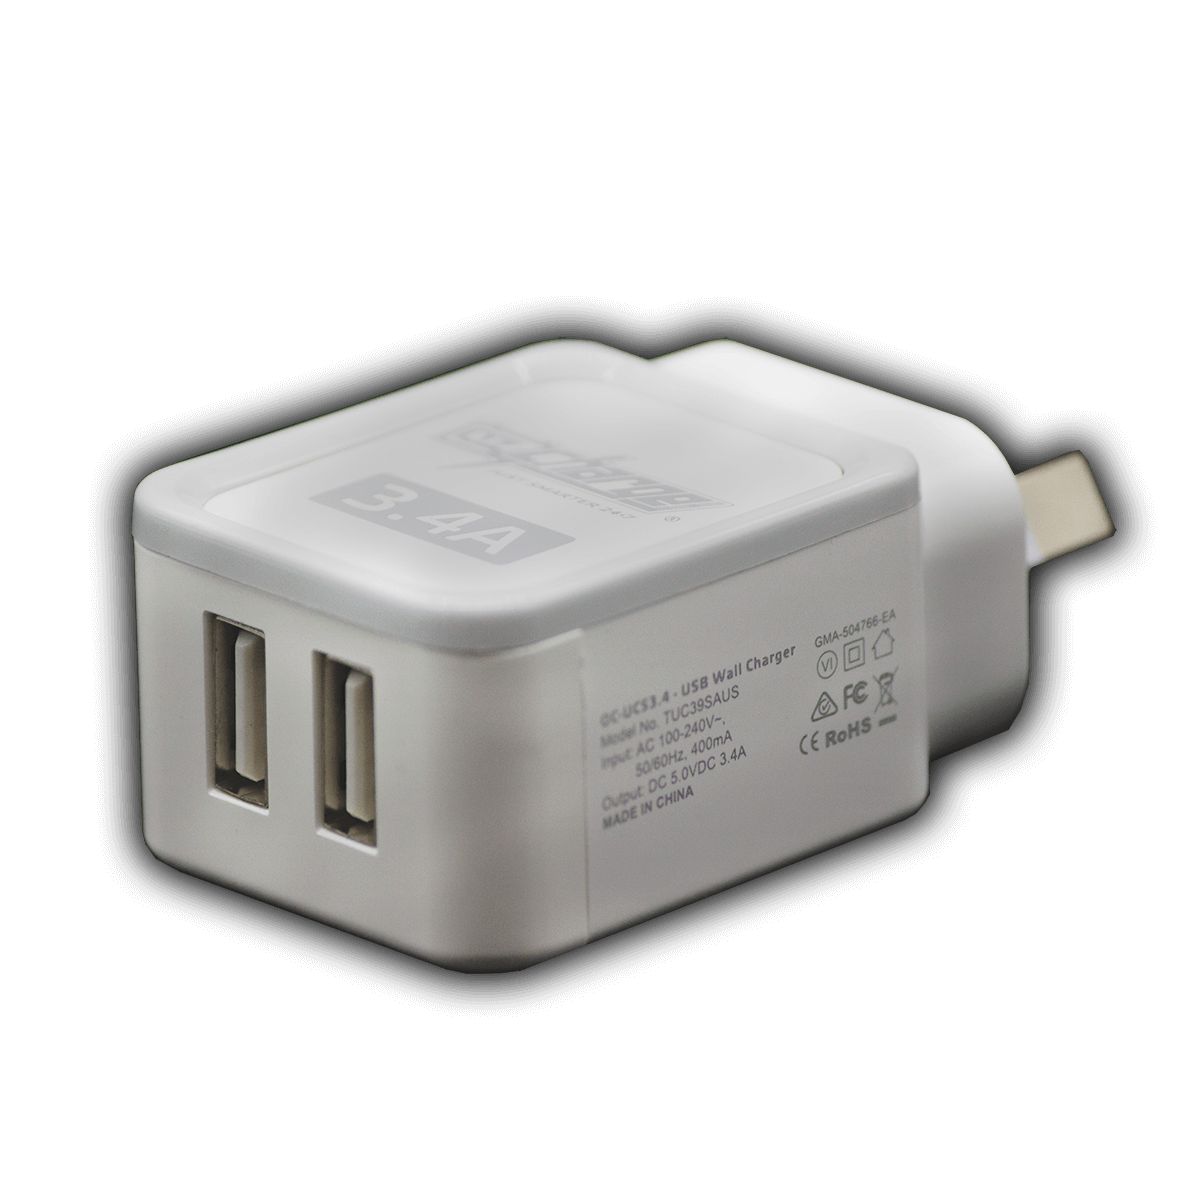 3.4A Dual USB Port Mains Wall Charger